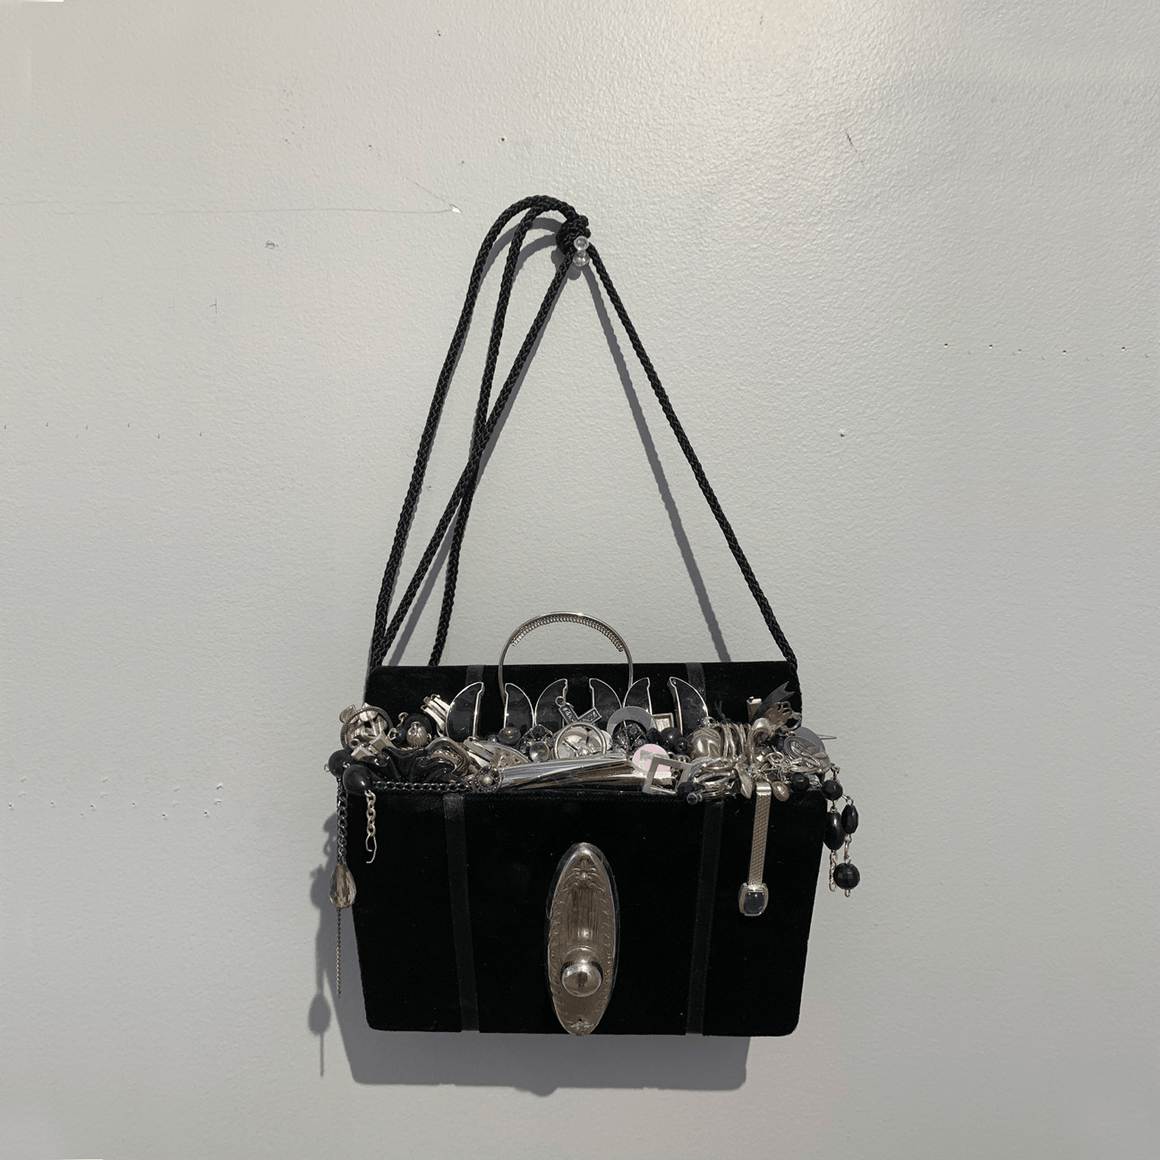 Monica Ciopettini Bolo Bag (2020) - Monica Cioppettini